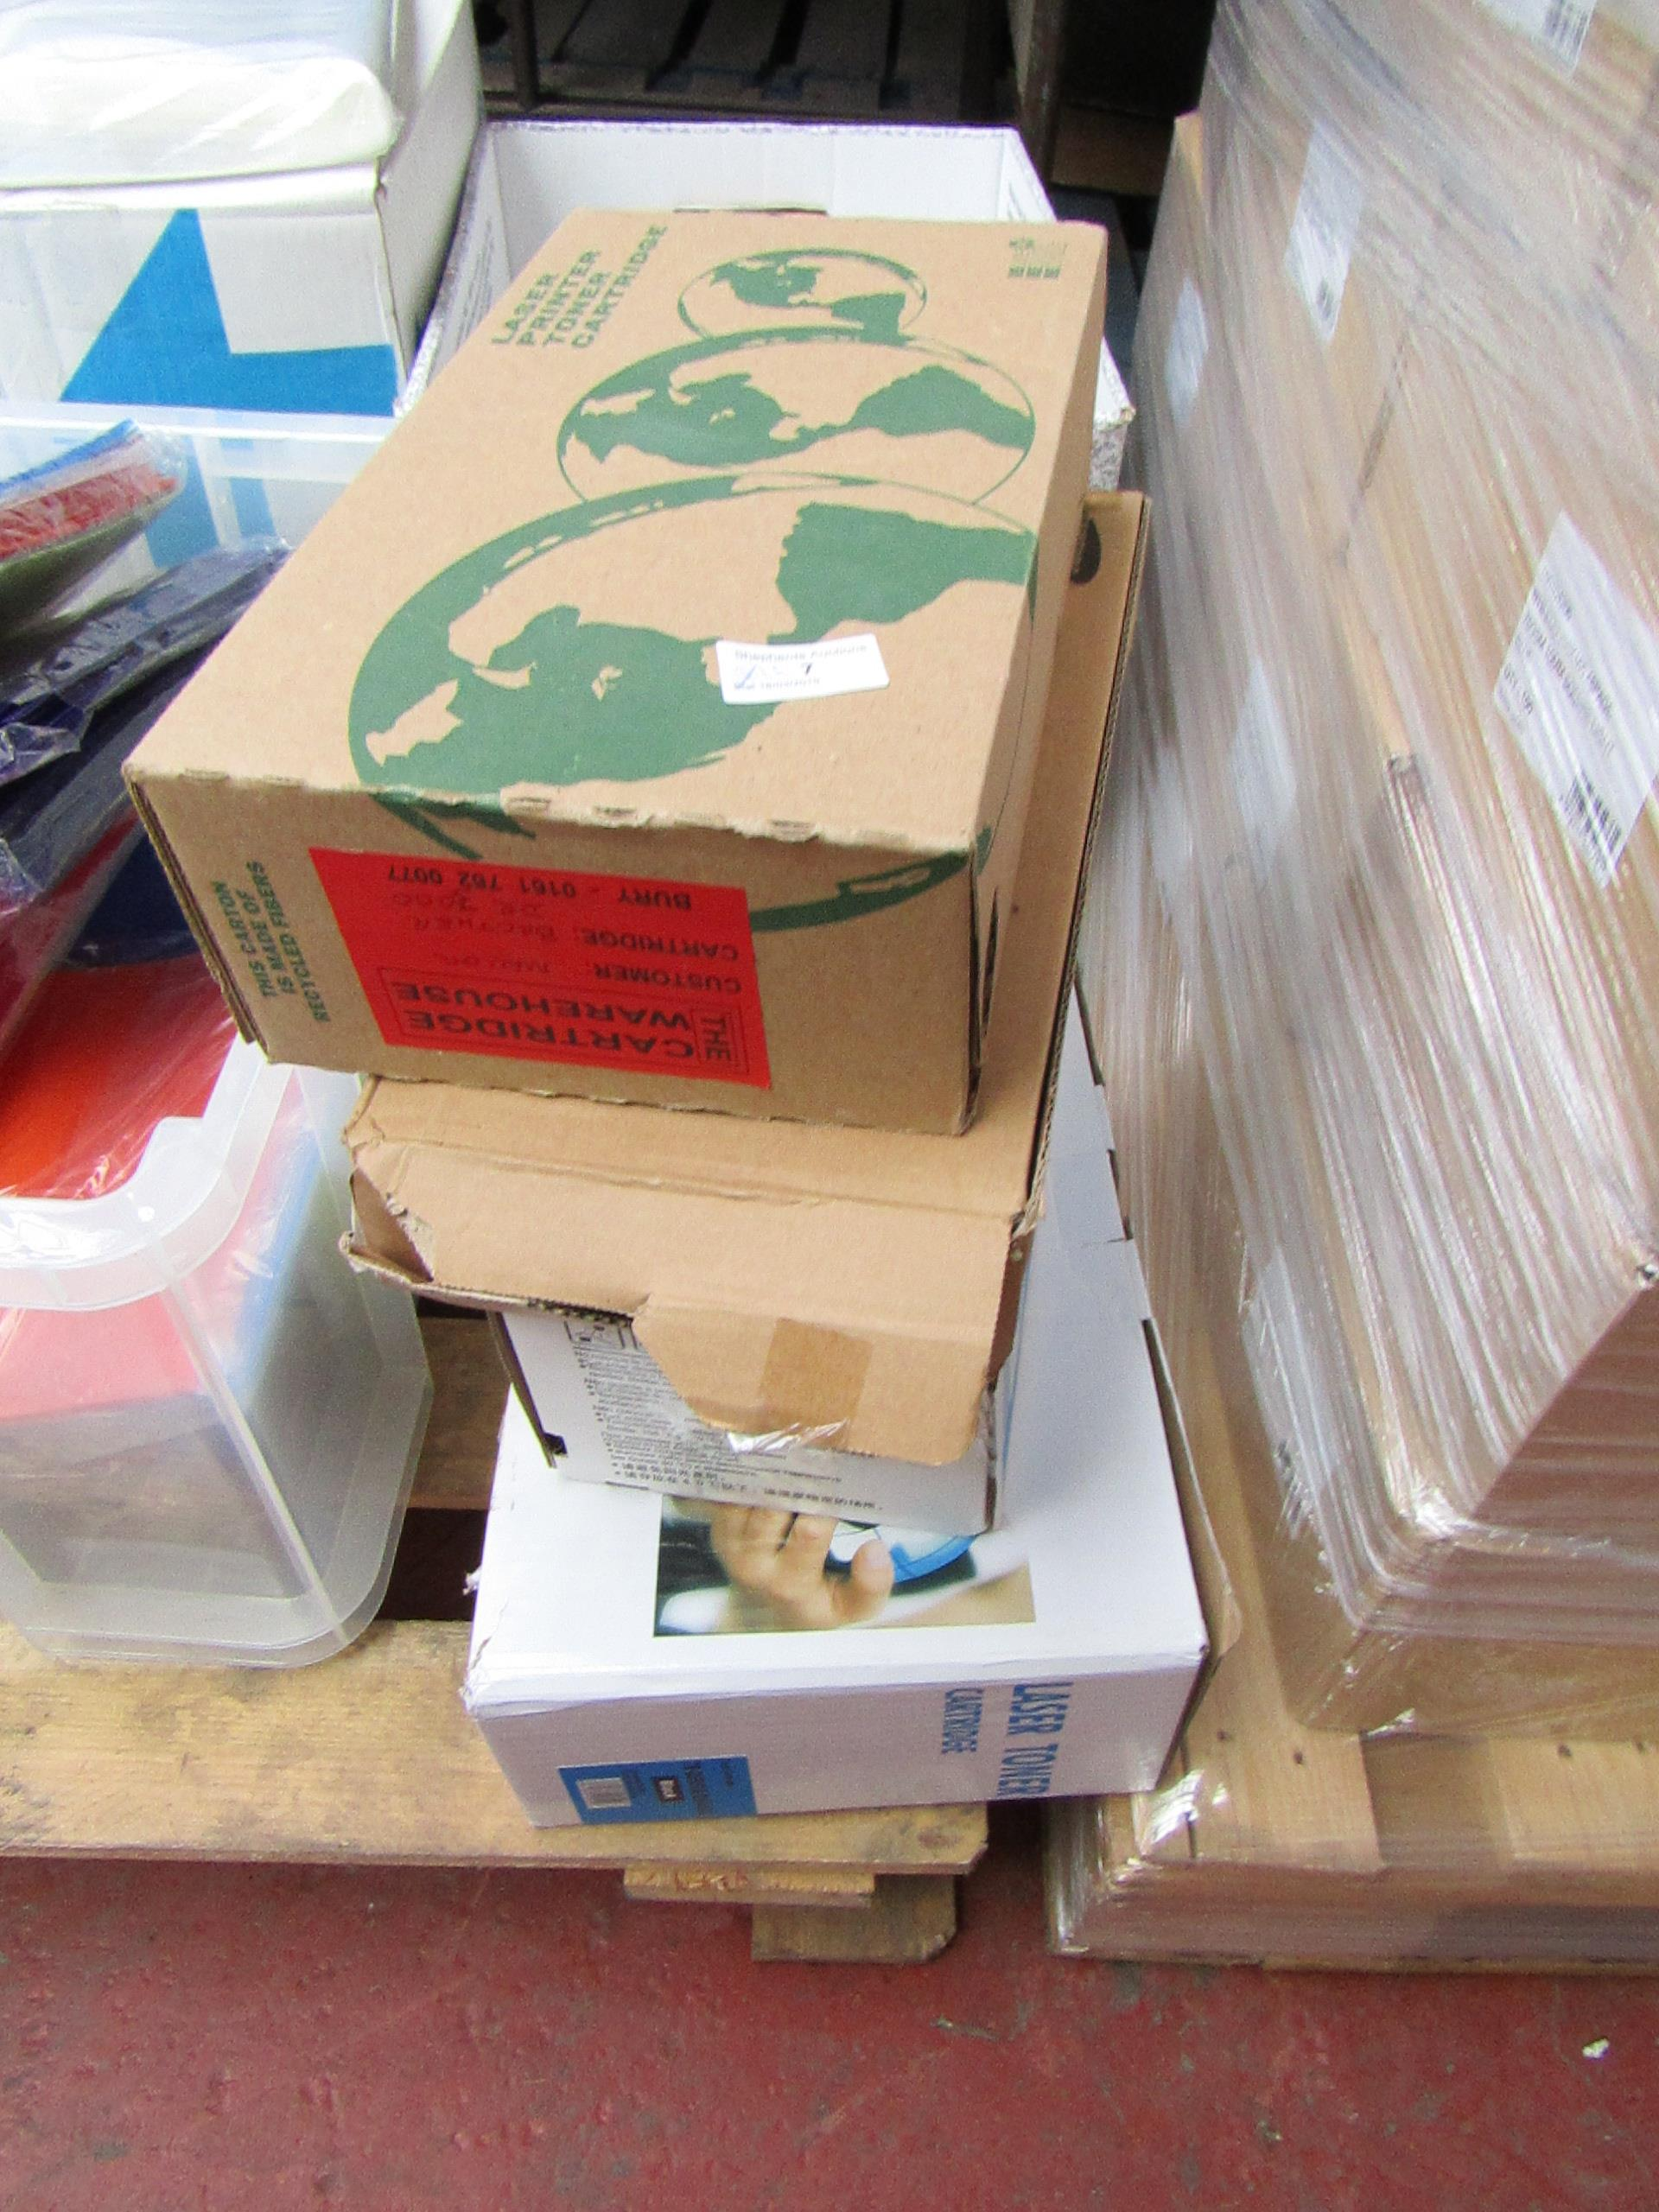 Lot 7 - 4x Laser toner cartridges, appear to be for Samsung, Brother, unchecked and boxed